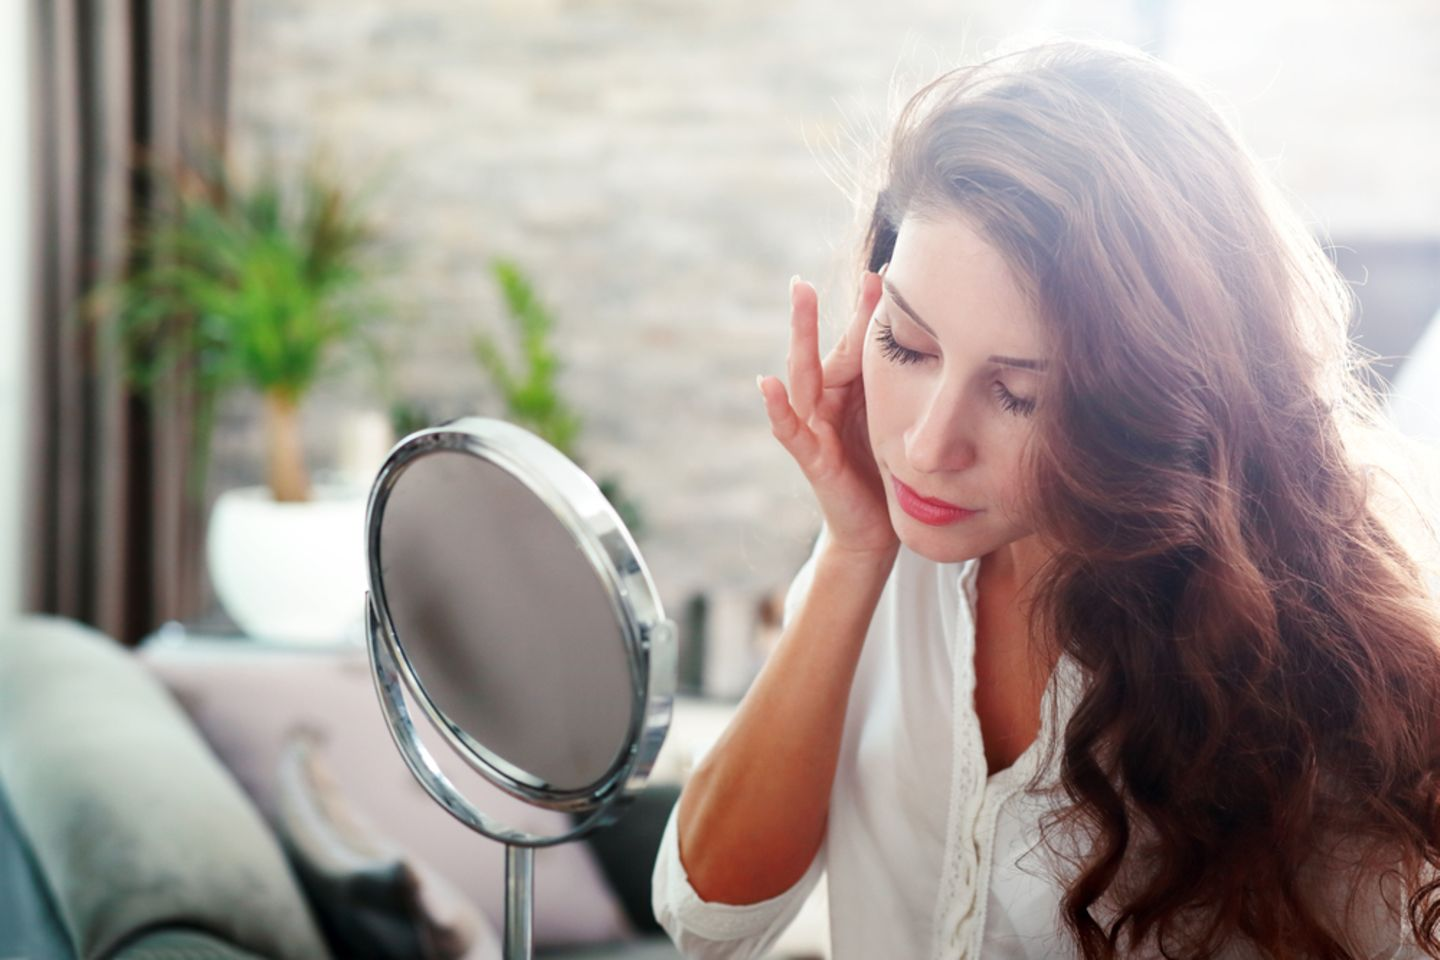 Pimples in the ear: woman grabs her right ear and looks in the direction of the mirror on a table